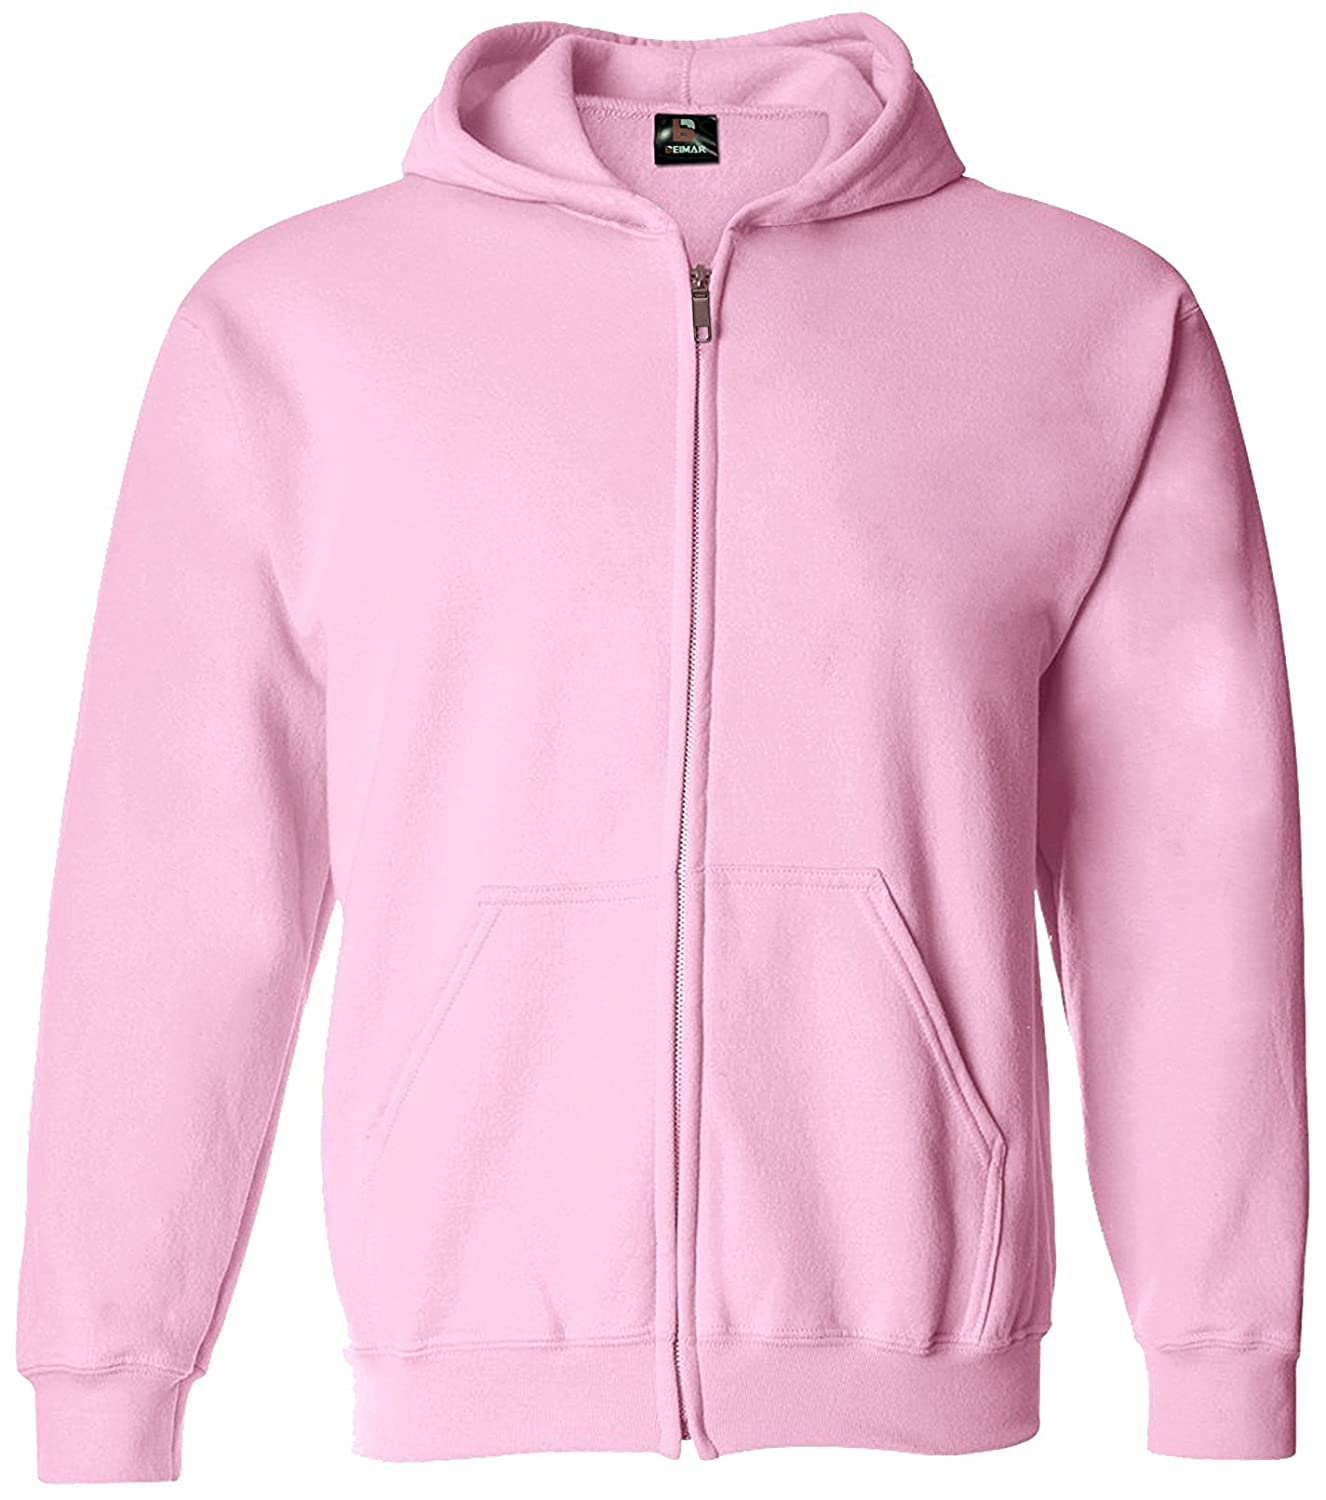 602c47feef5 Amazon.com  Beimar Girl s Zip-Up Light Pink Hoodie Fashion Apparel for  Young Women  Clothing